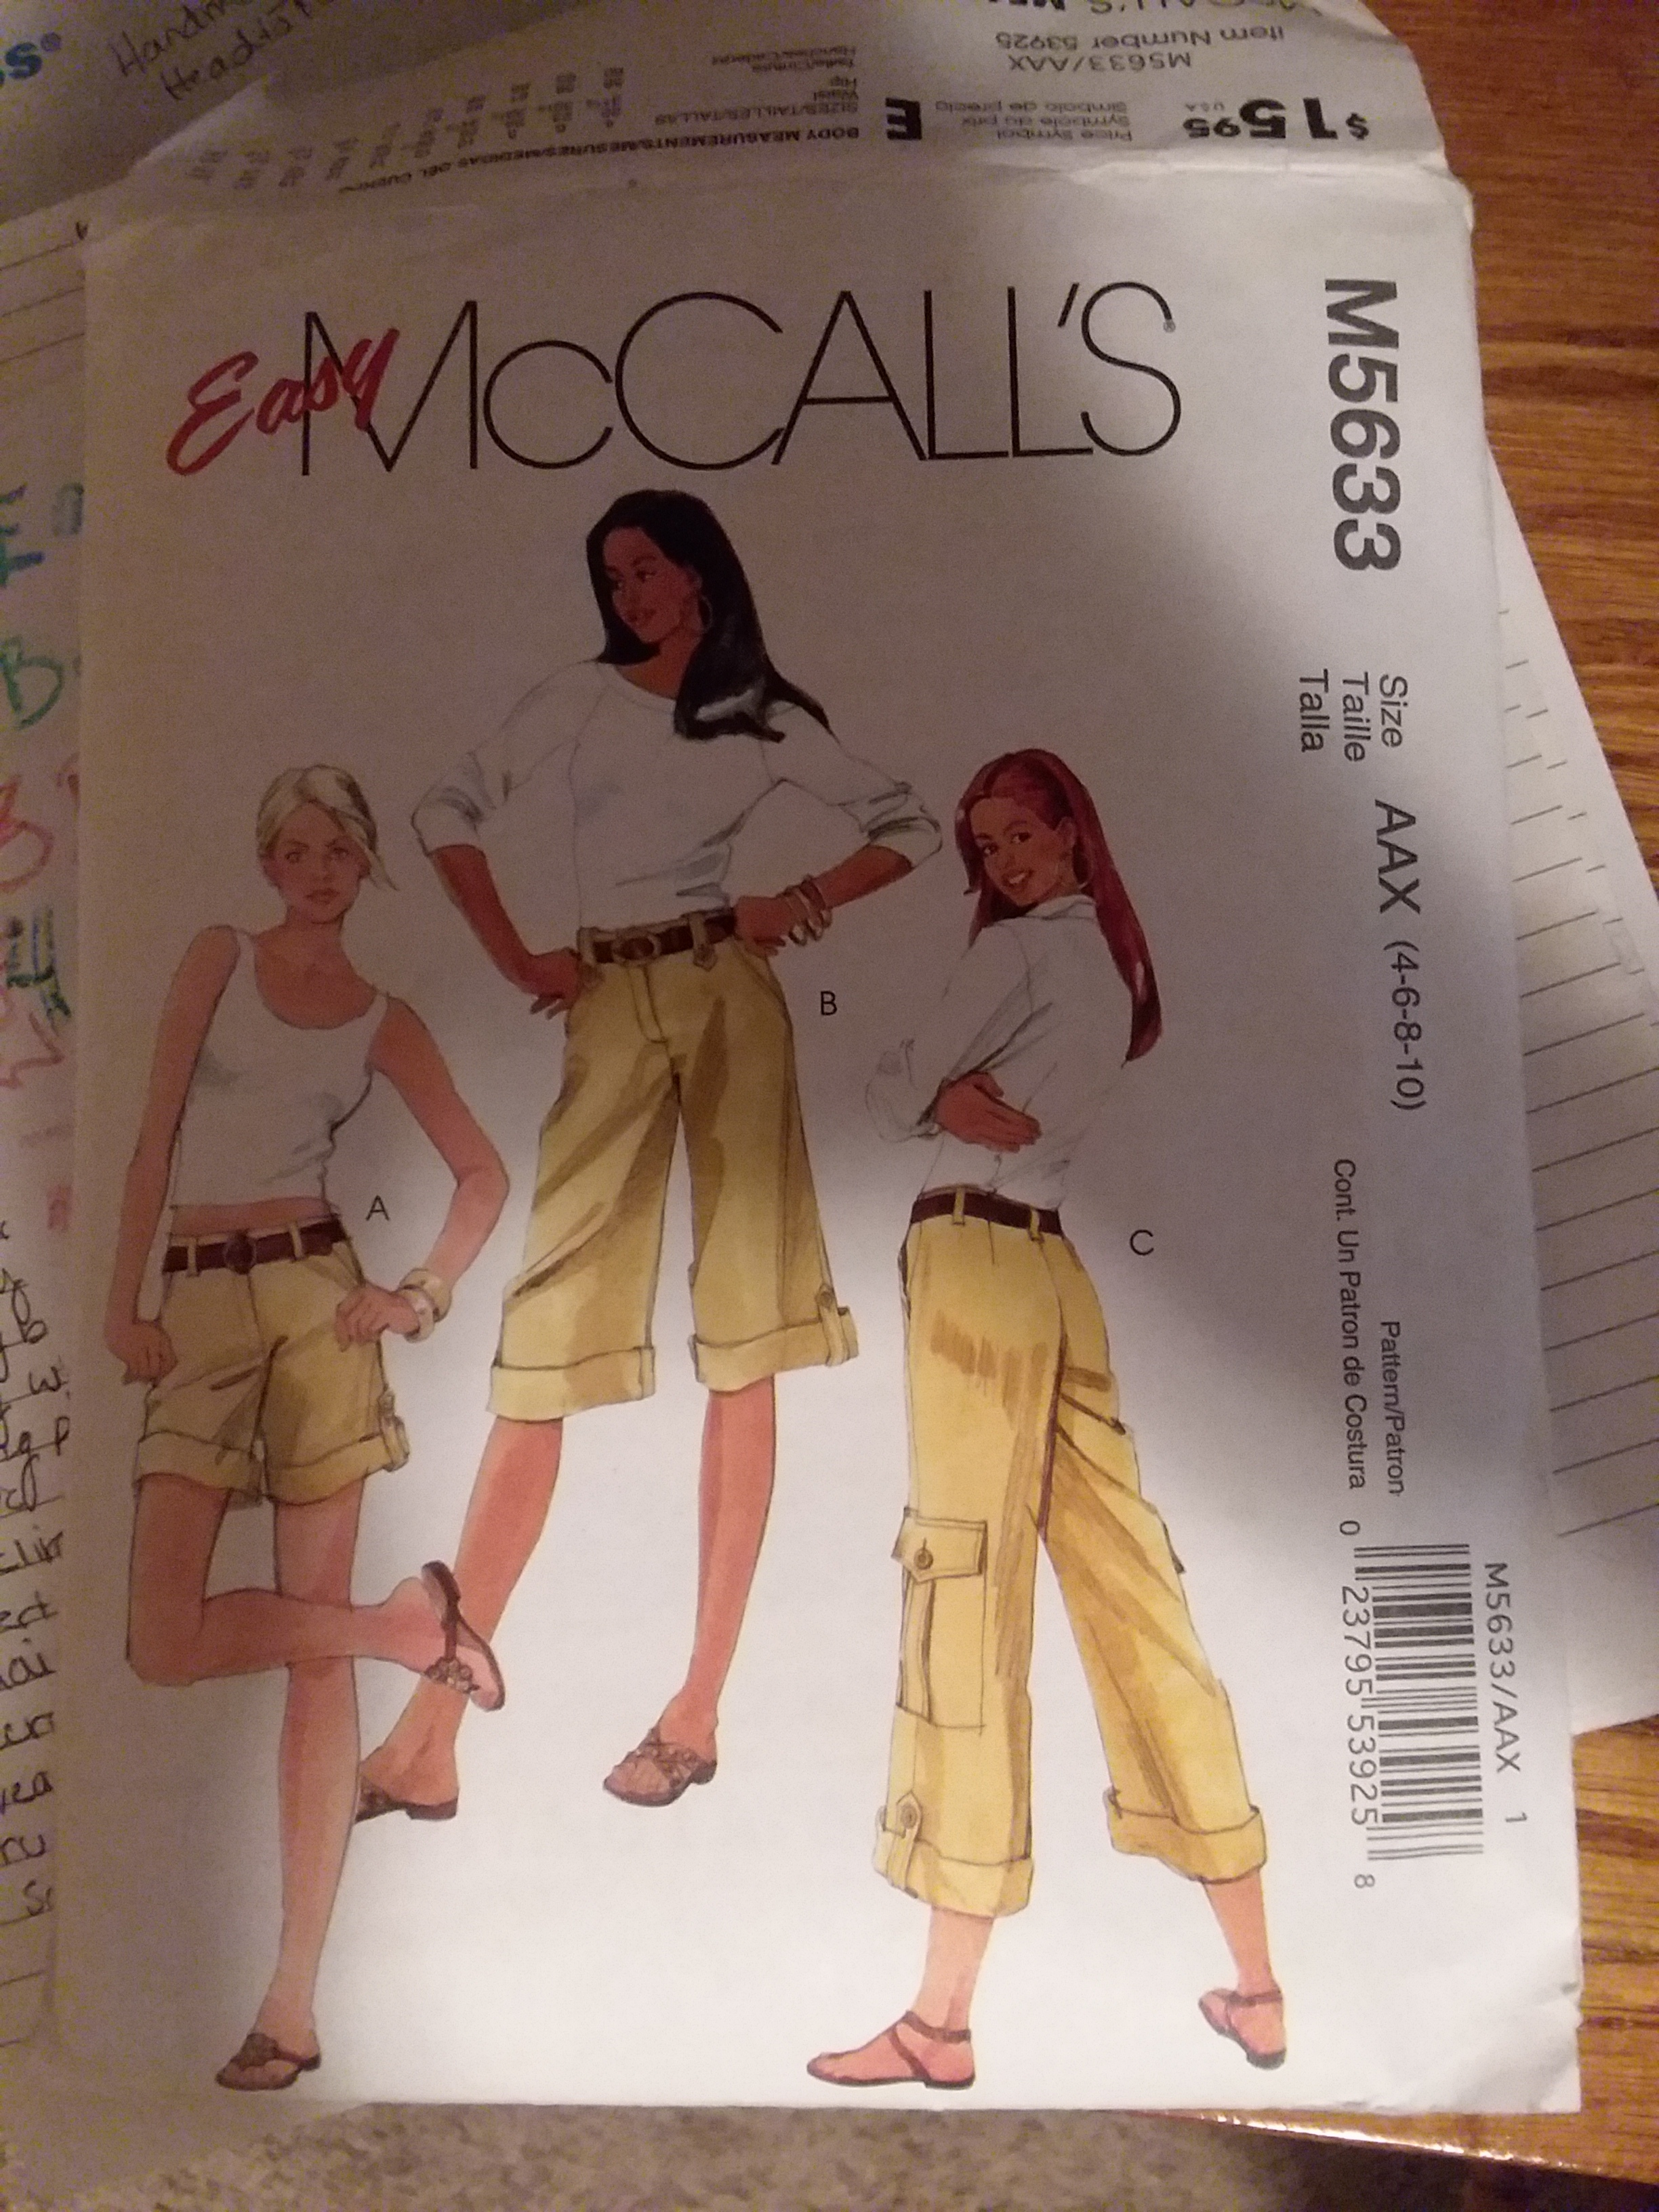 McCalls Pattern, I made View B as shorts. The pattern was purchased as part of a grab bag of patterns from a thrift store.